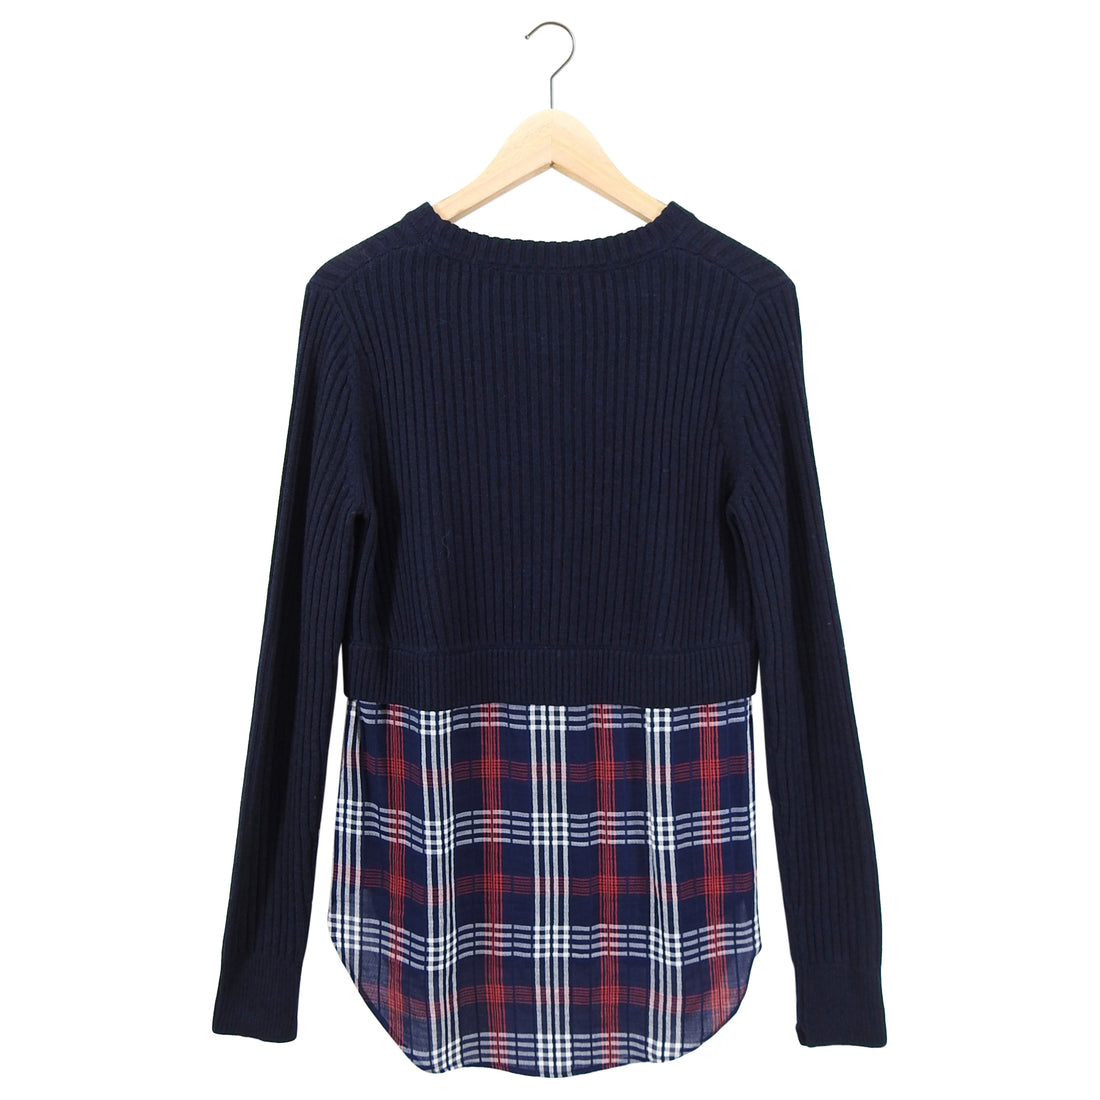 Veronica Beard Navy Garrett Wool Knit Sweater with Plaid Inset - S/M